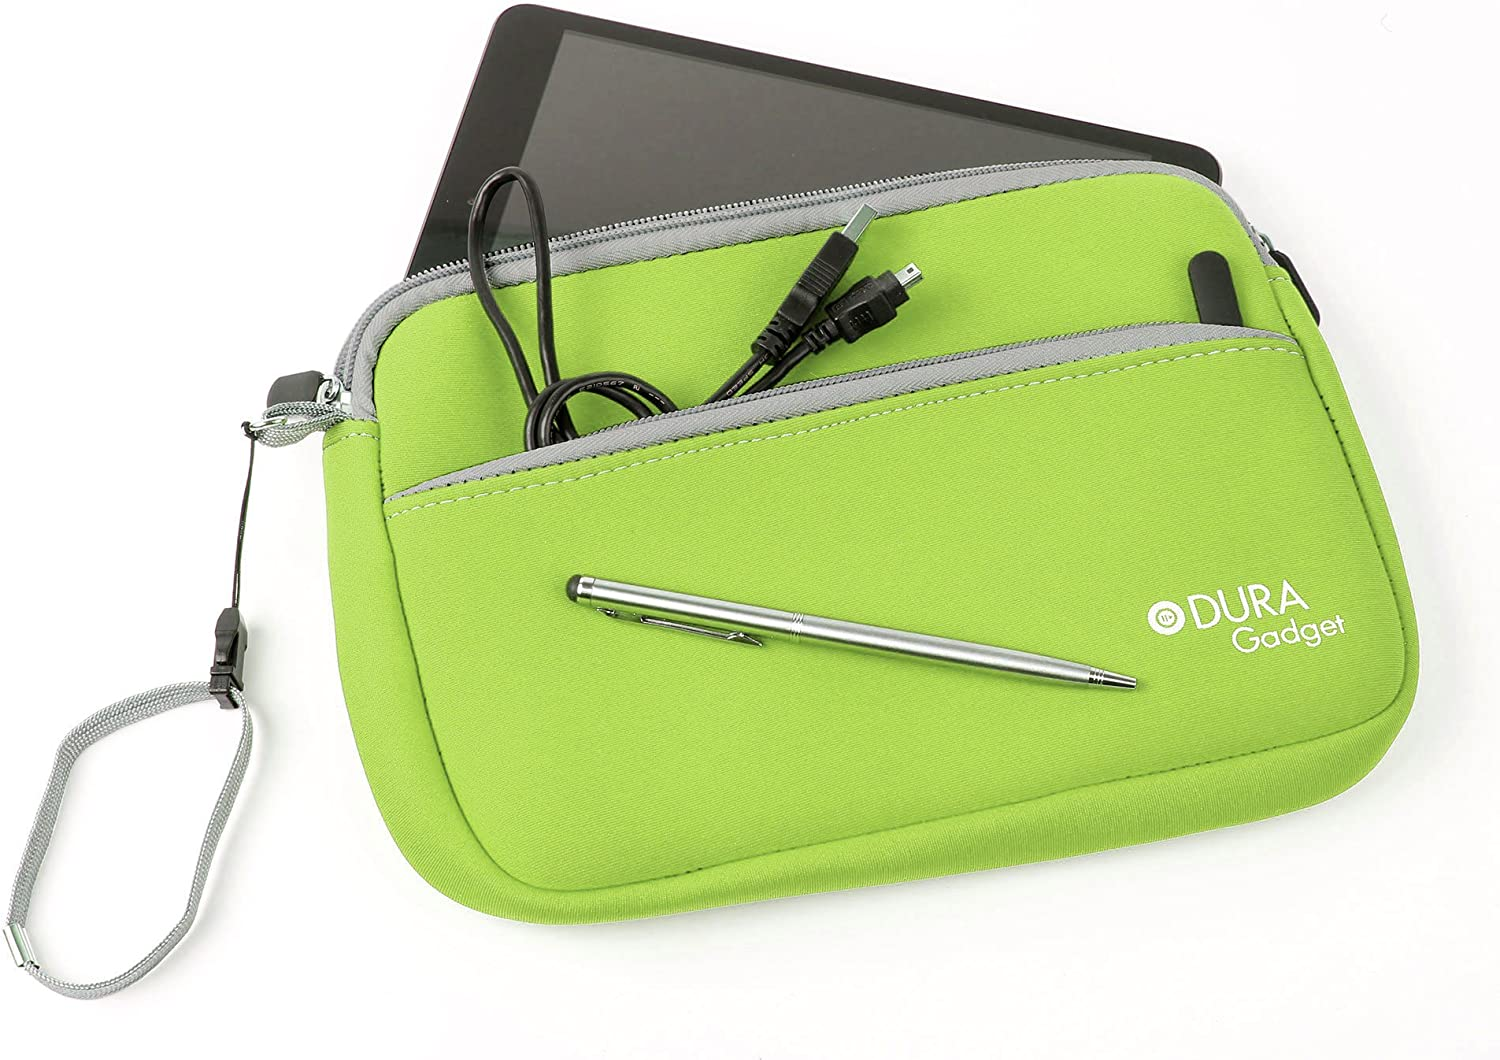 DURAGADGET Lime Green Water Resistant Neoprene Case - Compatible with Acer Iconia Tab A1-810 | A1-810-81251G00NW | Iconia Tab A210 | Iconia Tab A211 | Iconia Tab A200 | Iconia Tab A1-810